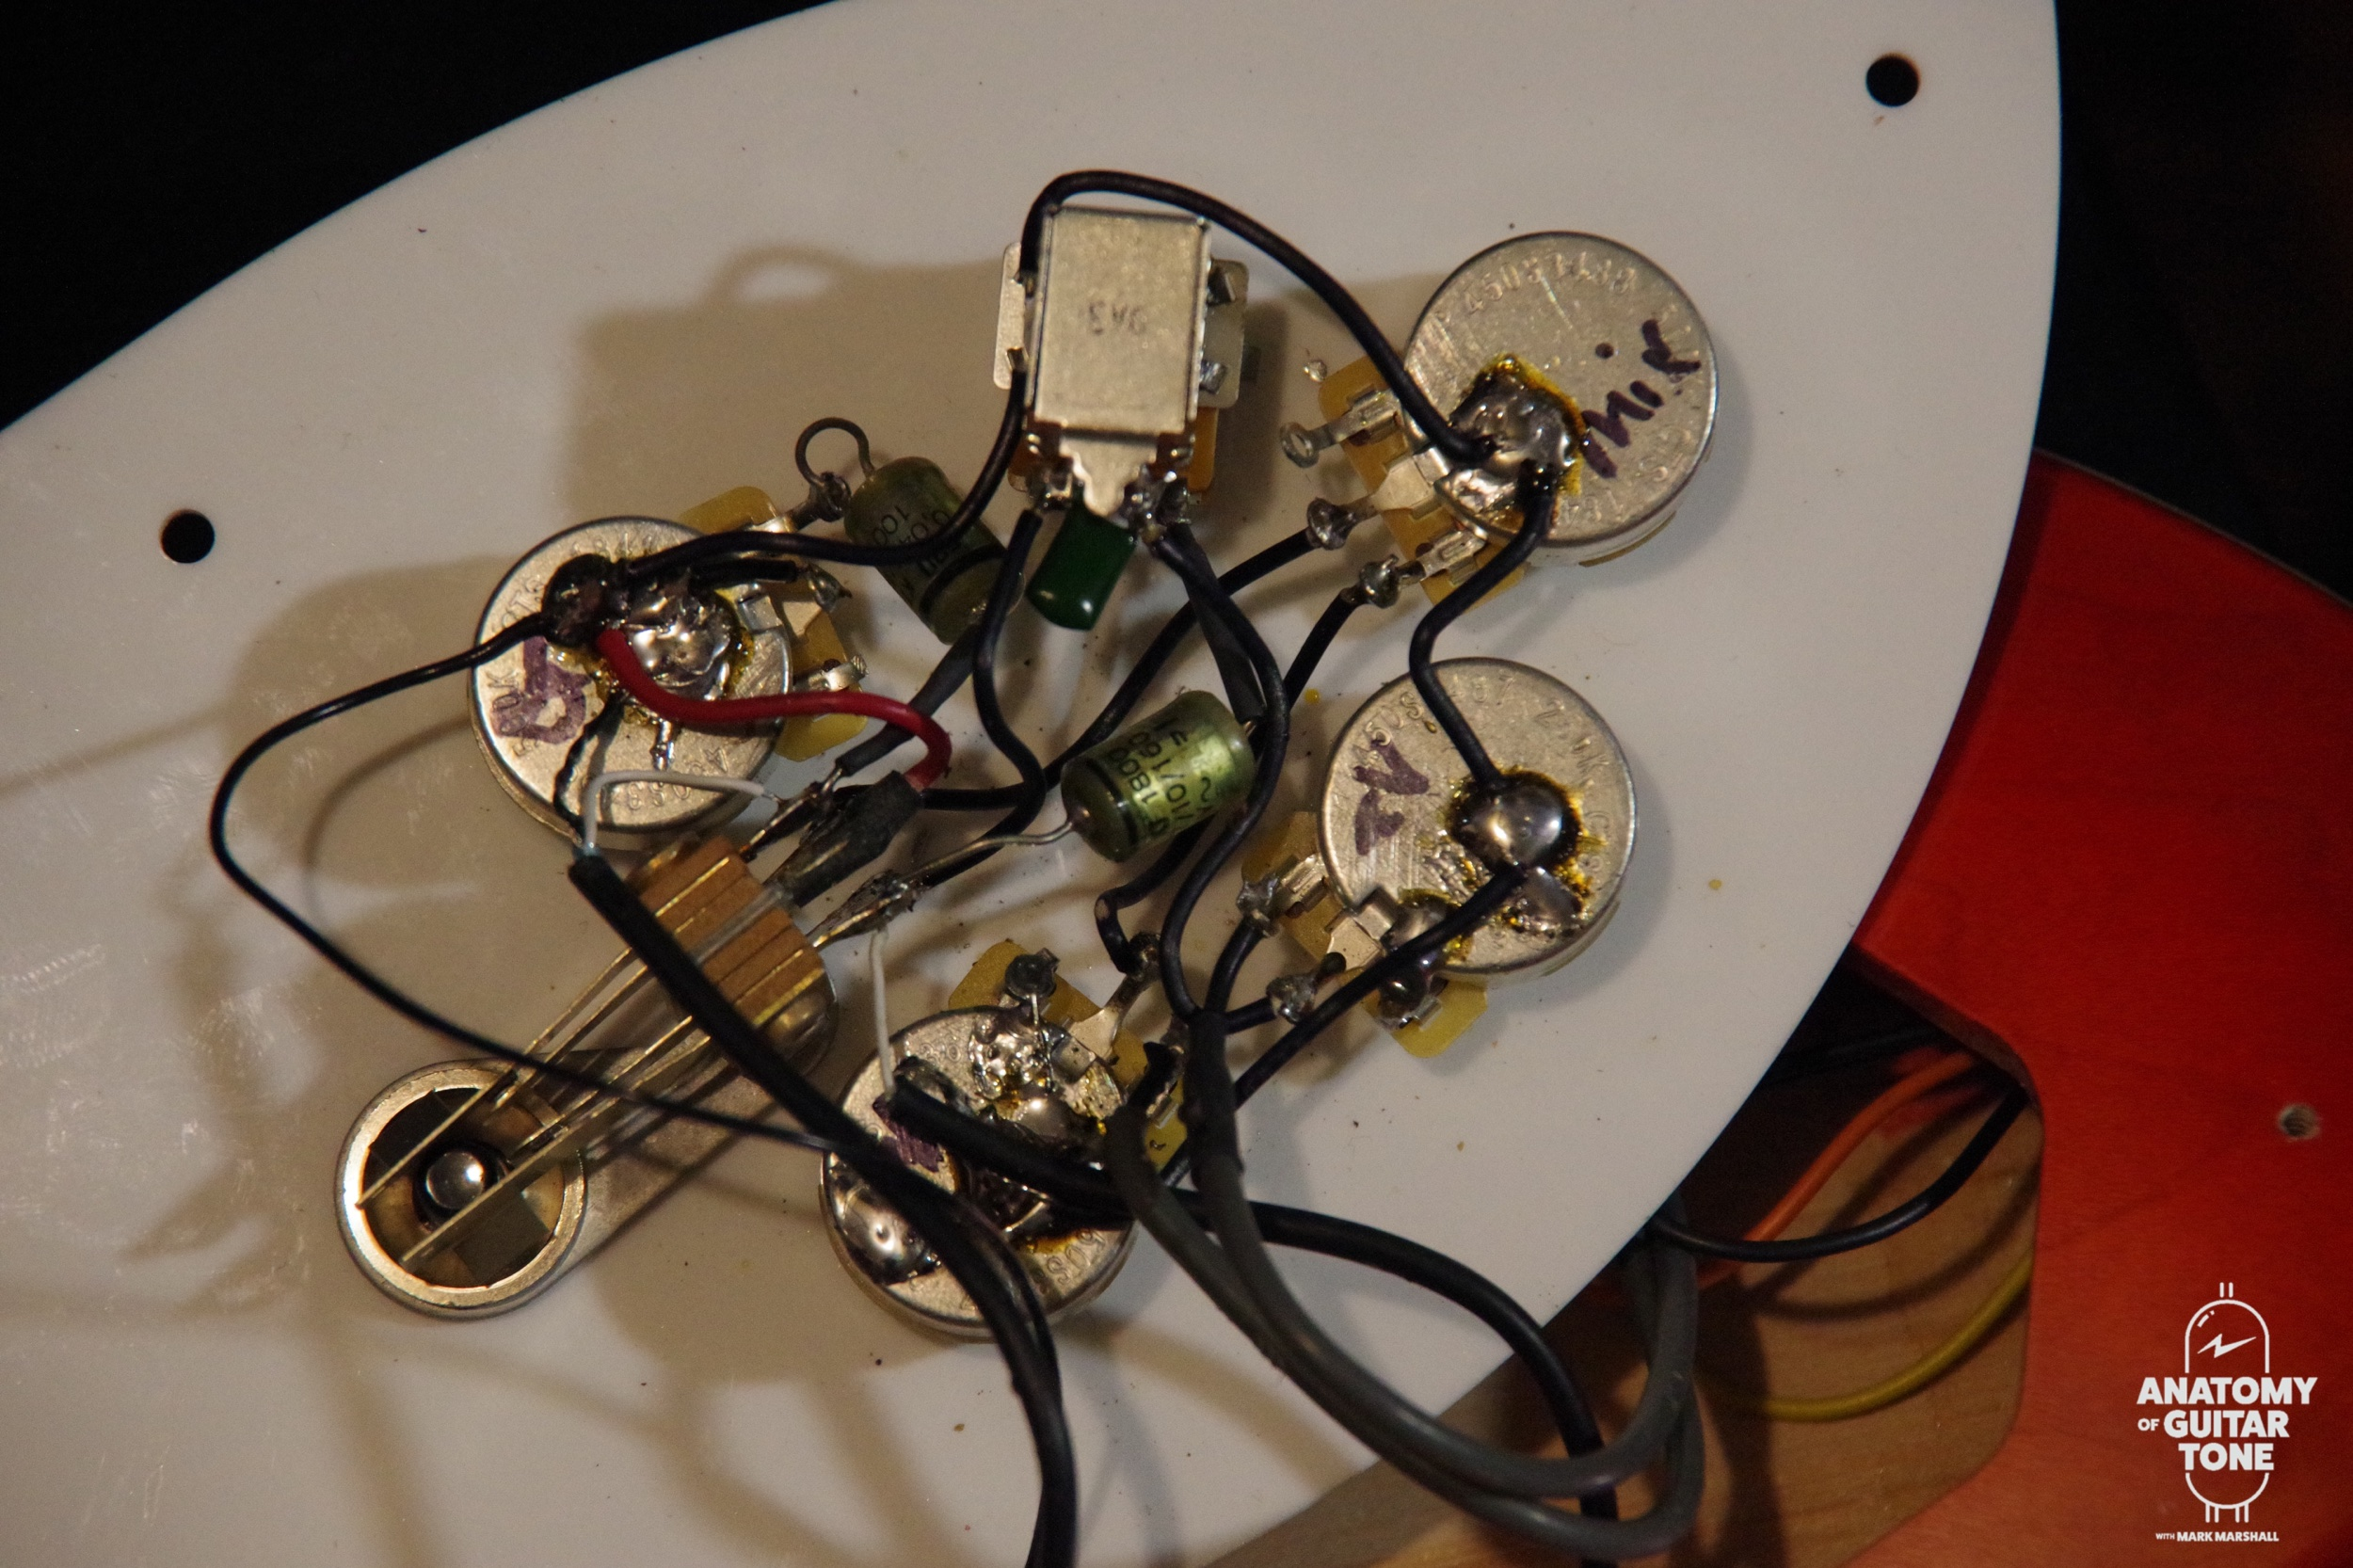 Getting that vintage Rickenbacker 12 string tone — Anatomy of Guitar ToneAnatomy of Guitar Tone